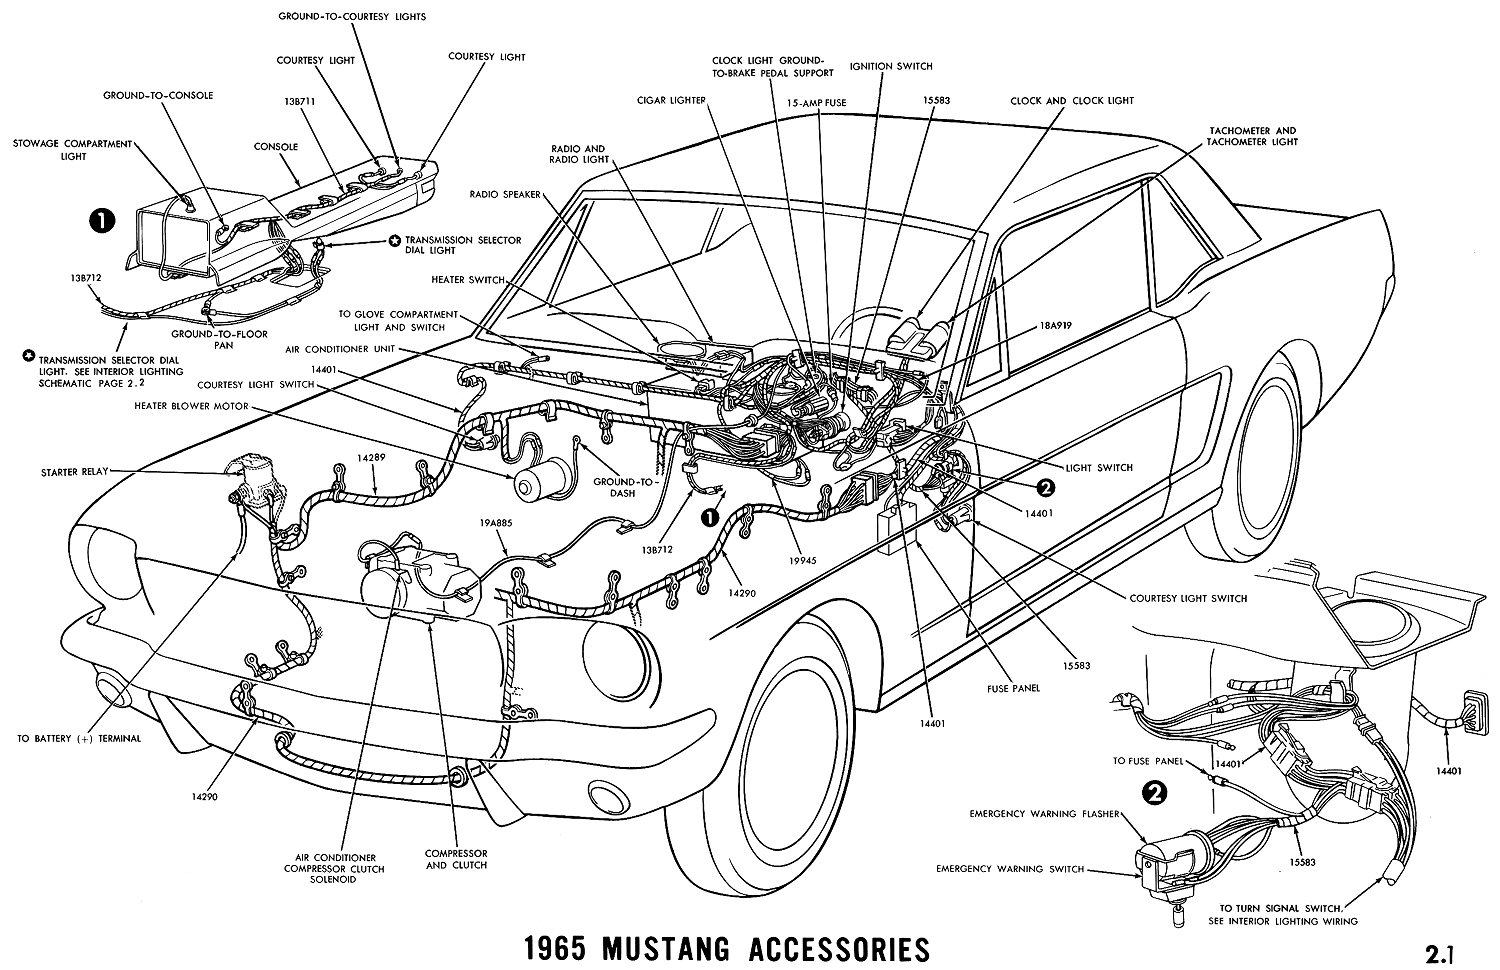 1965h 1965 mustang wiring diagrams average joe restoration 65 mustang alternator wiring diagram at n-0.co